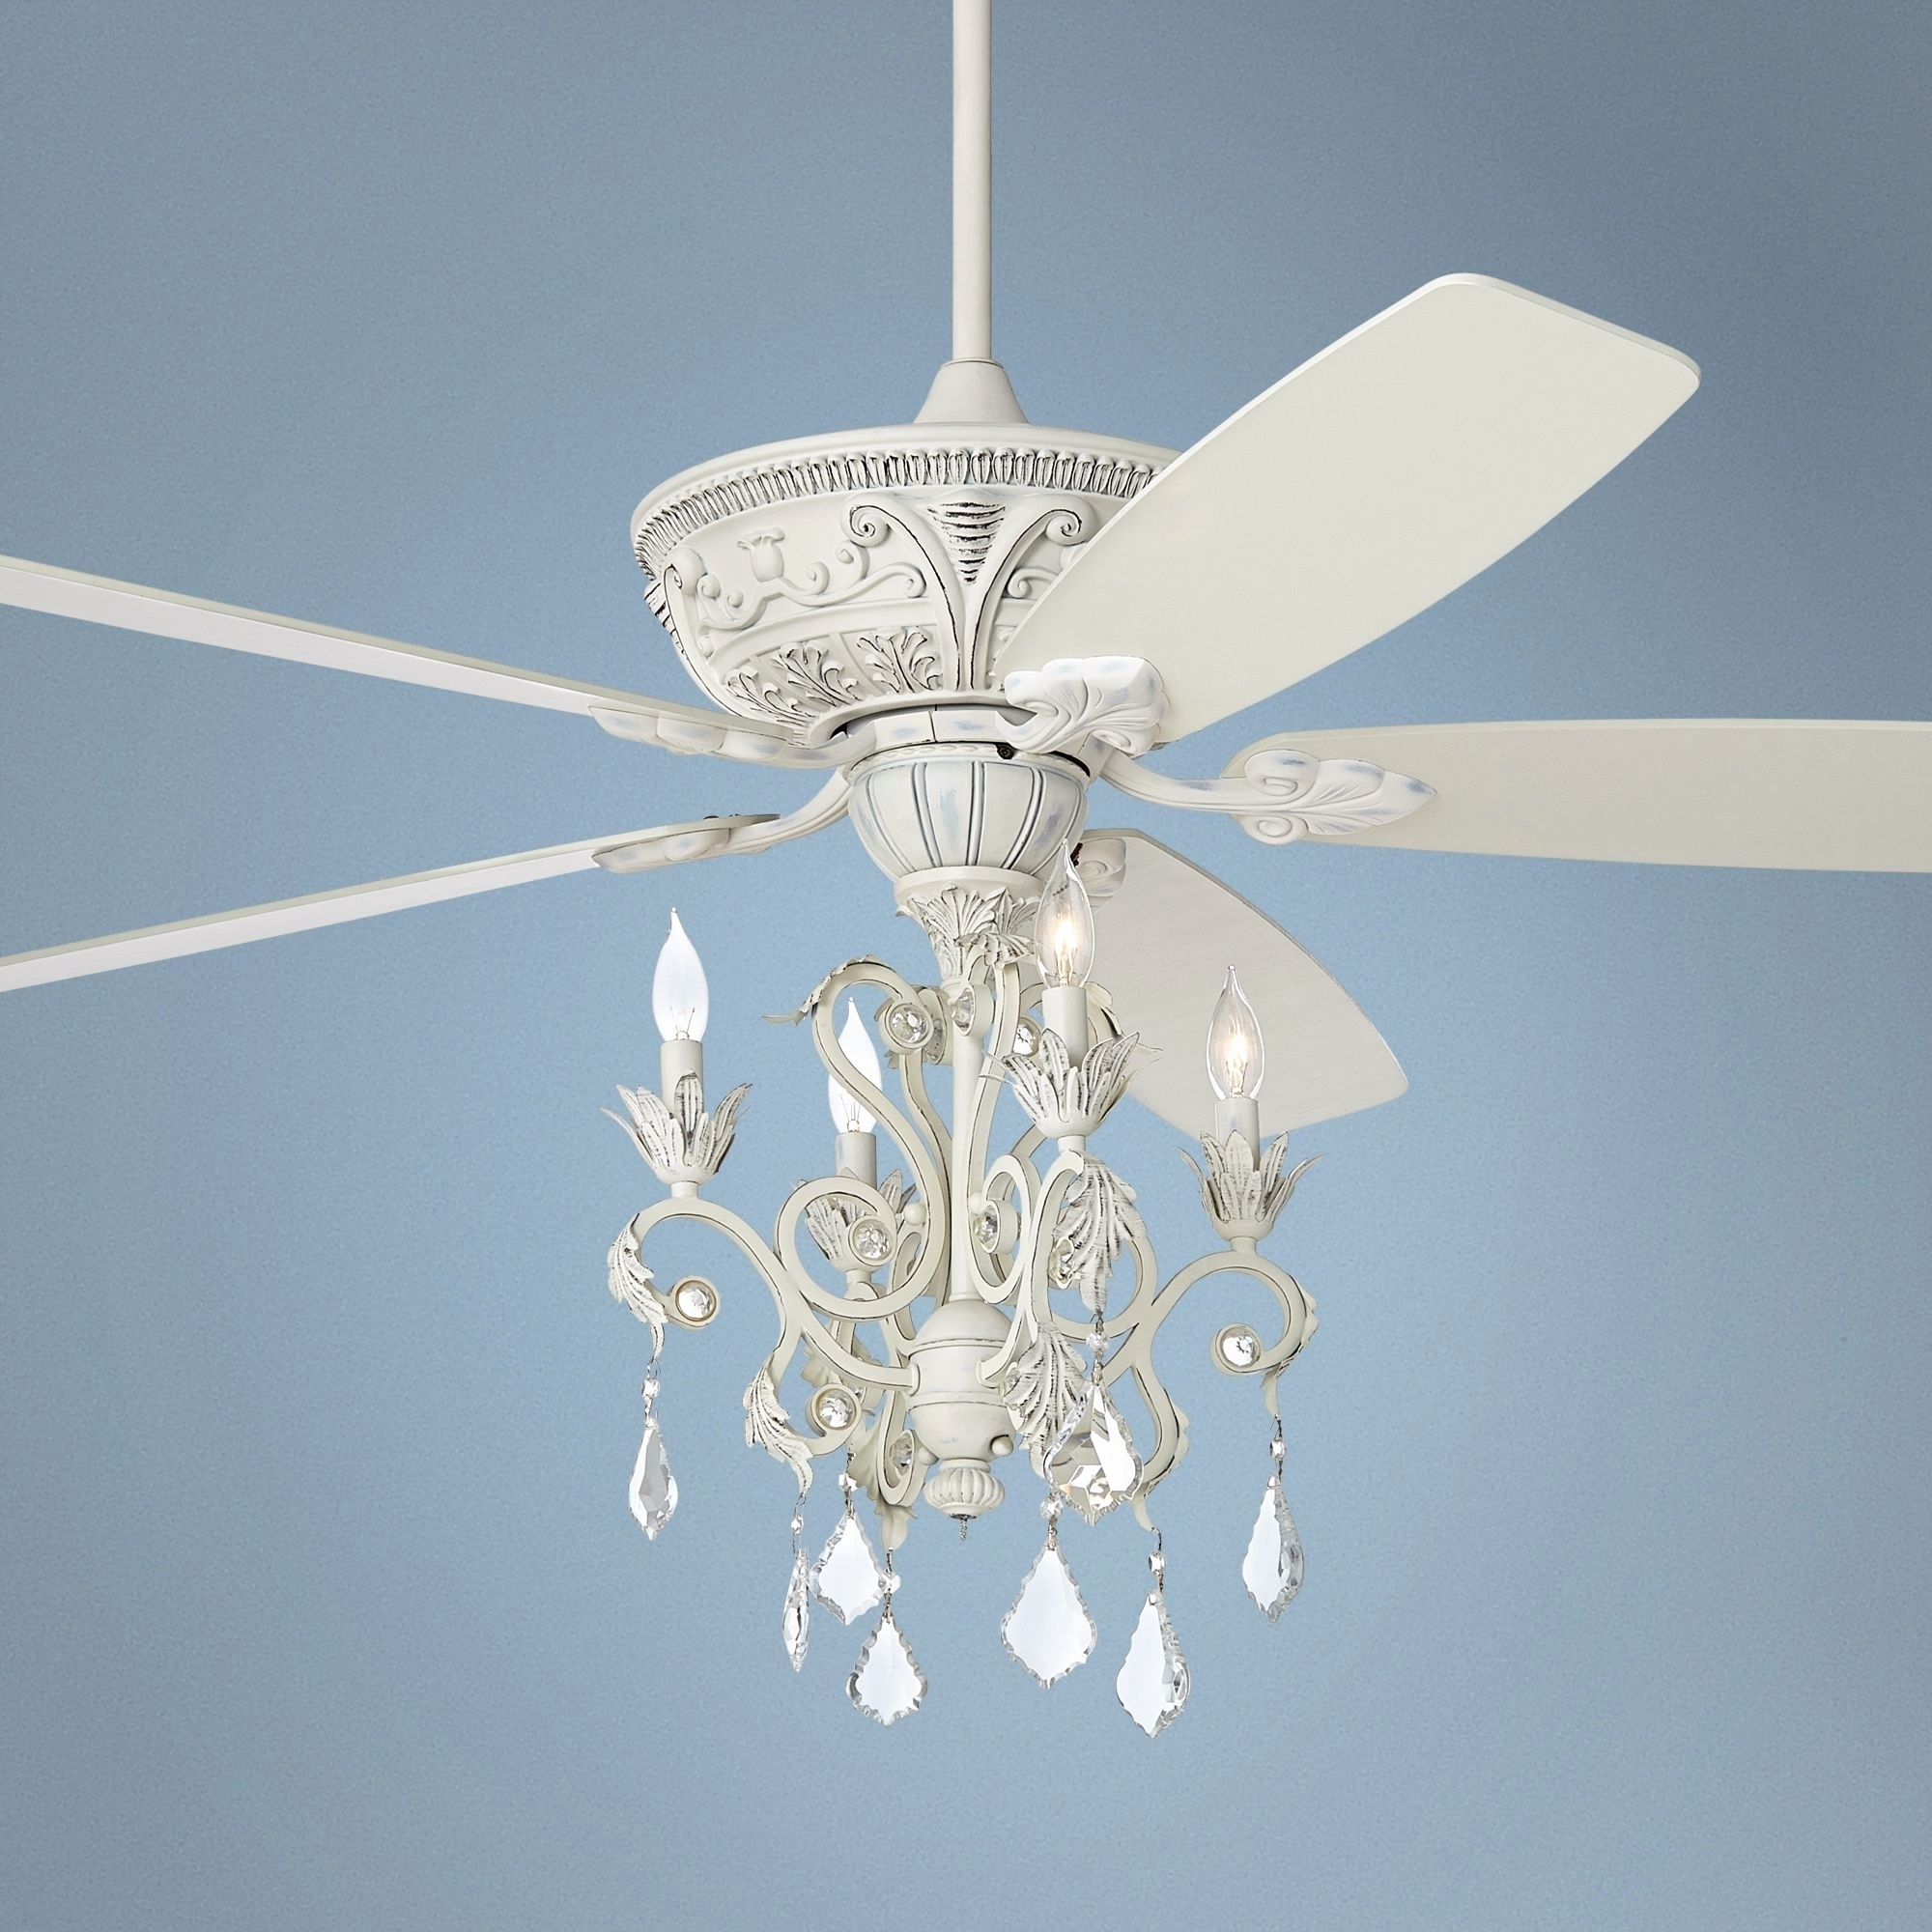 Awesome Ceiling Fan Chandelier Light Kit Unique Lamp Chandelier In 2017 Chandelier Light Fixture For Ceiling Fan (View 1 of 15)